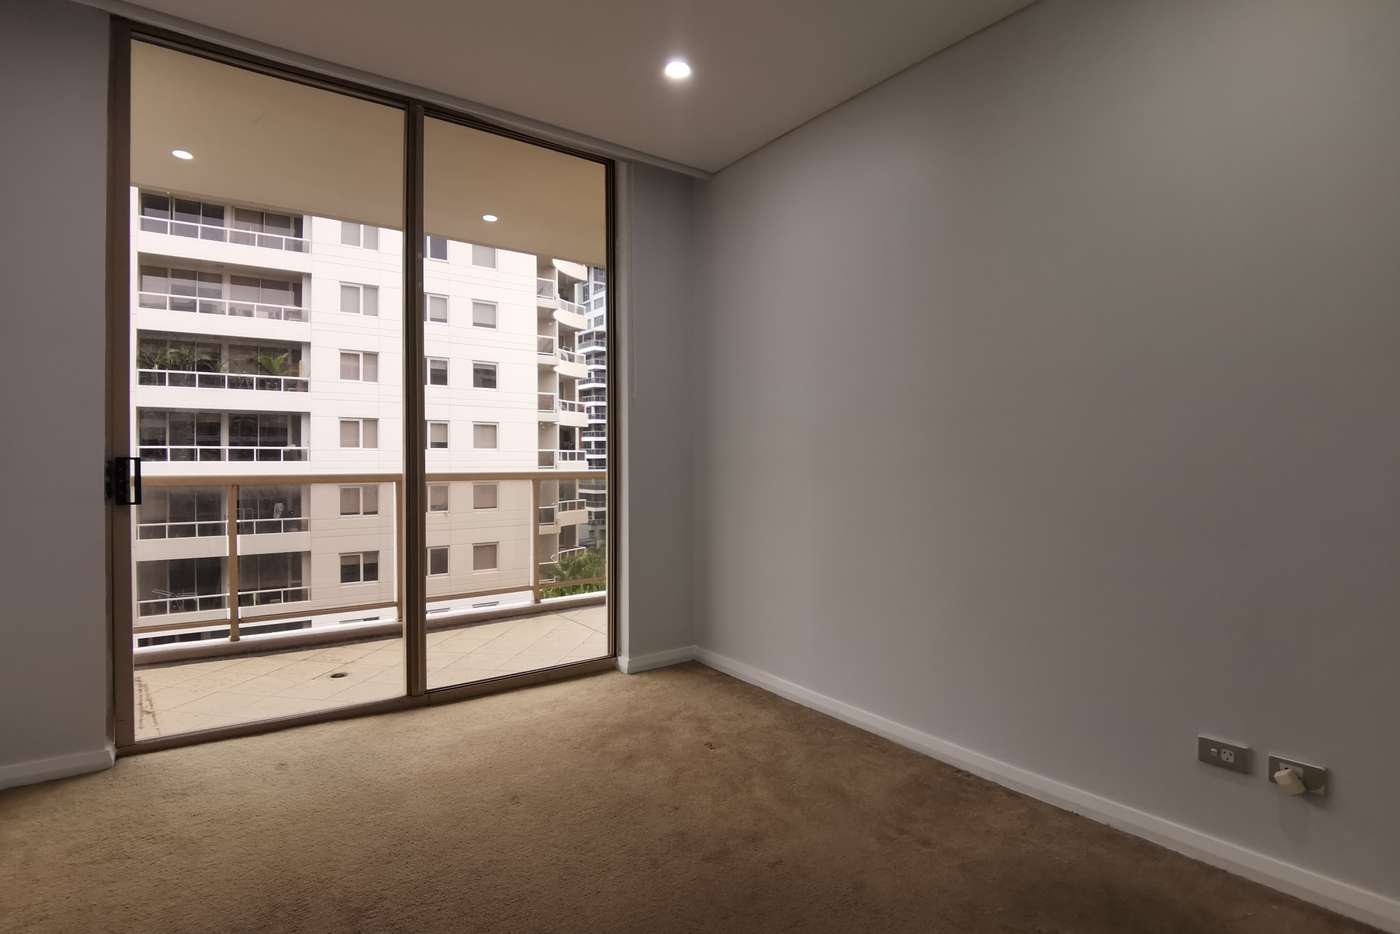 Fifth view of Homely apartment listing, 67/9 Broome St, Waterloo NSW 2017